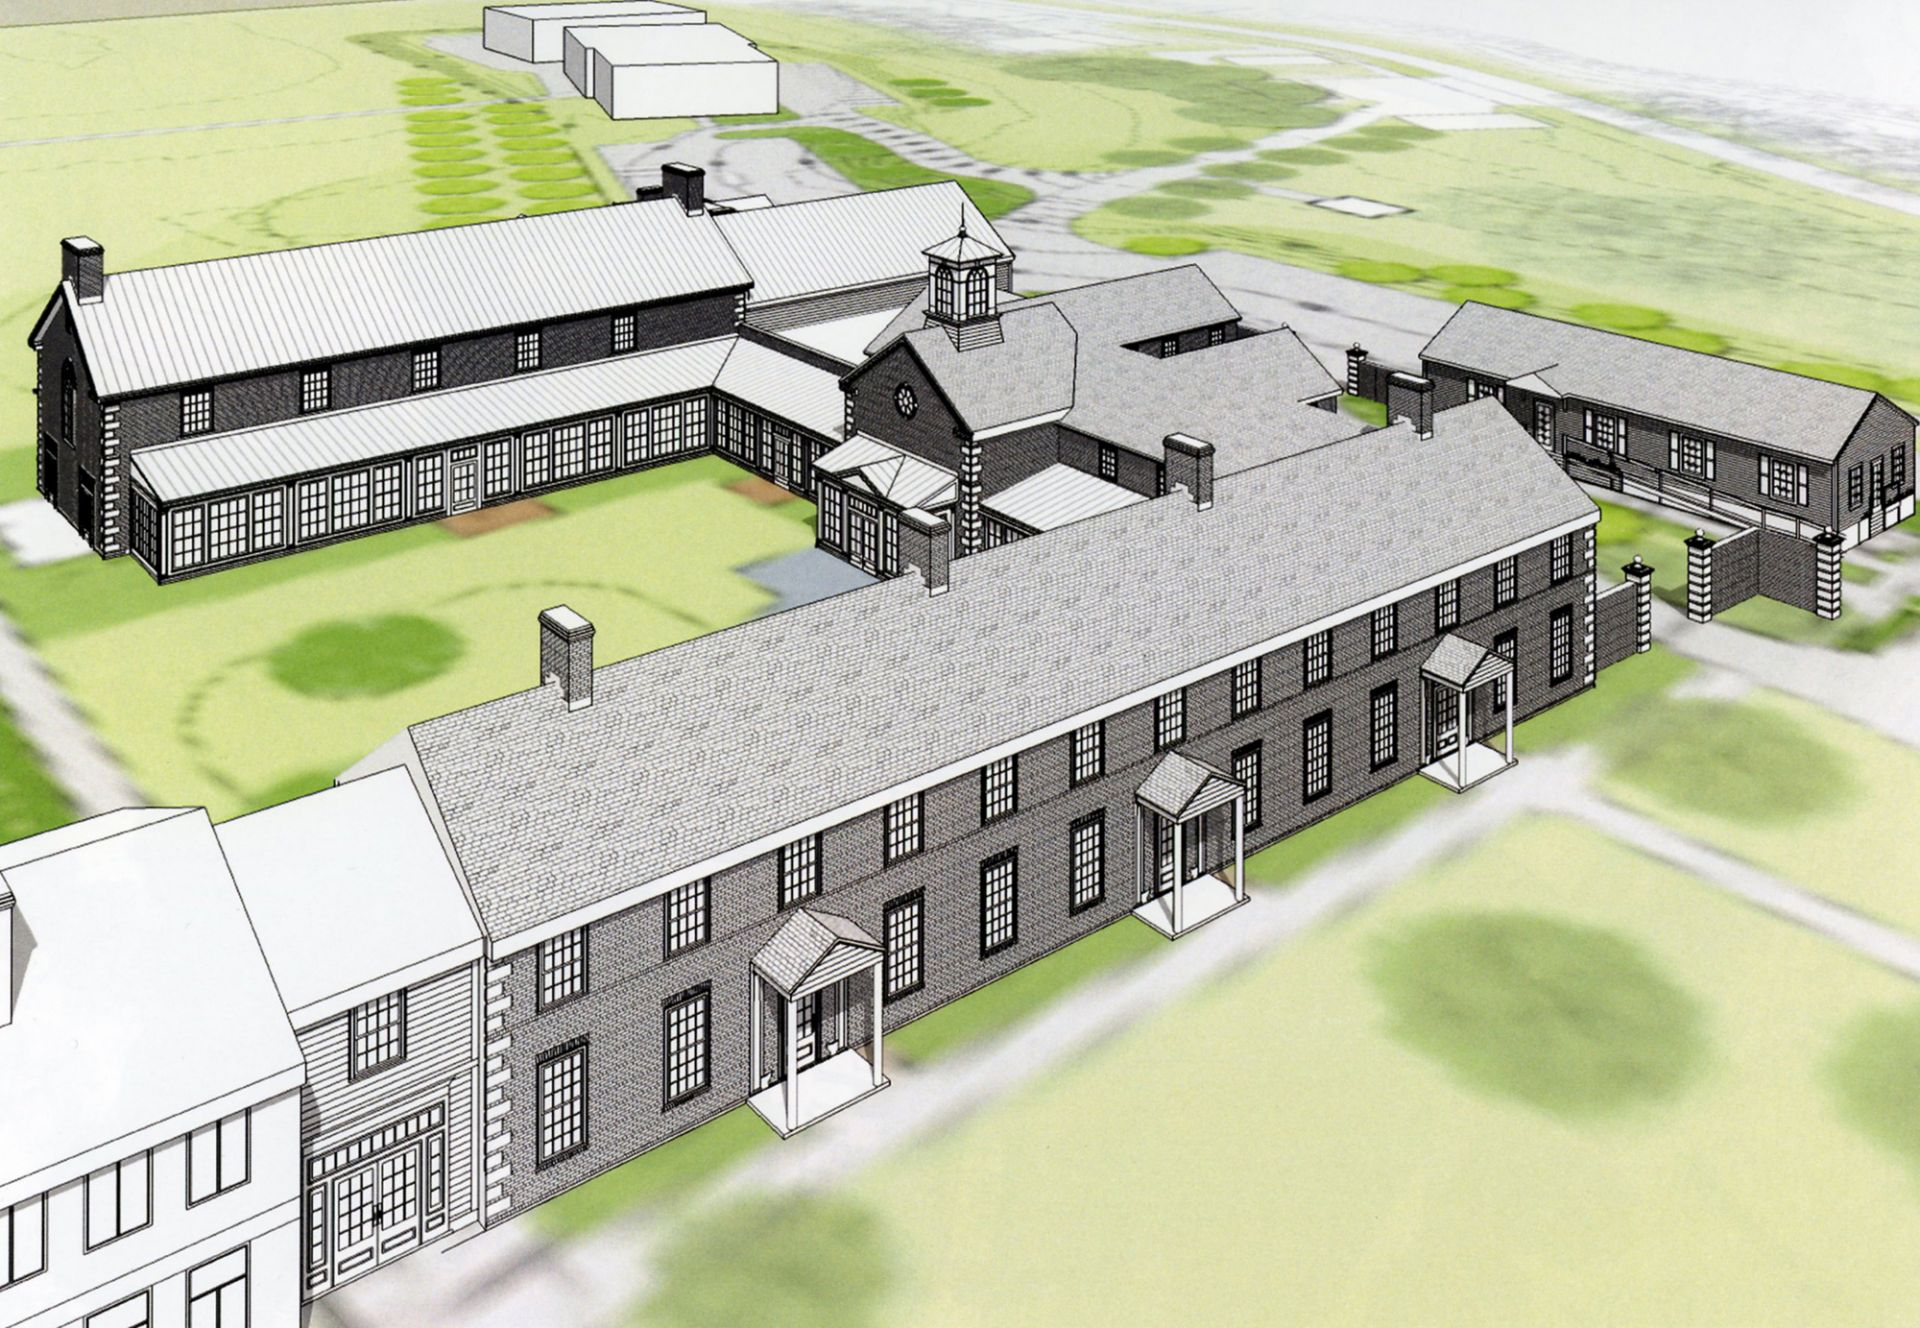 Rendering of the dining hall, courtyard, and Prum Hall